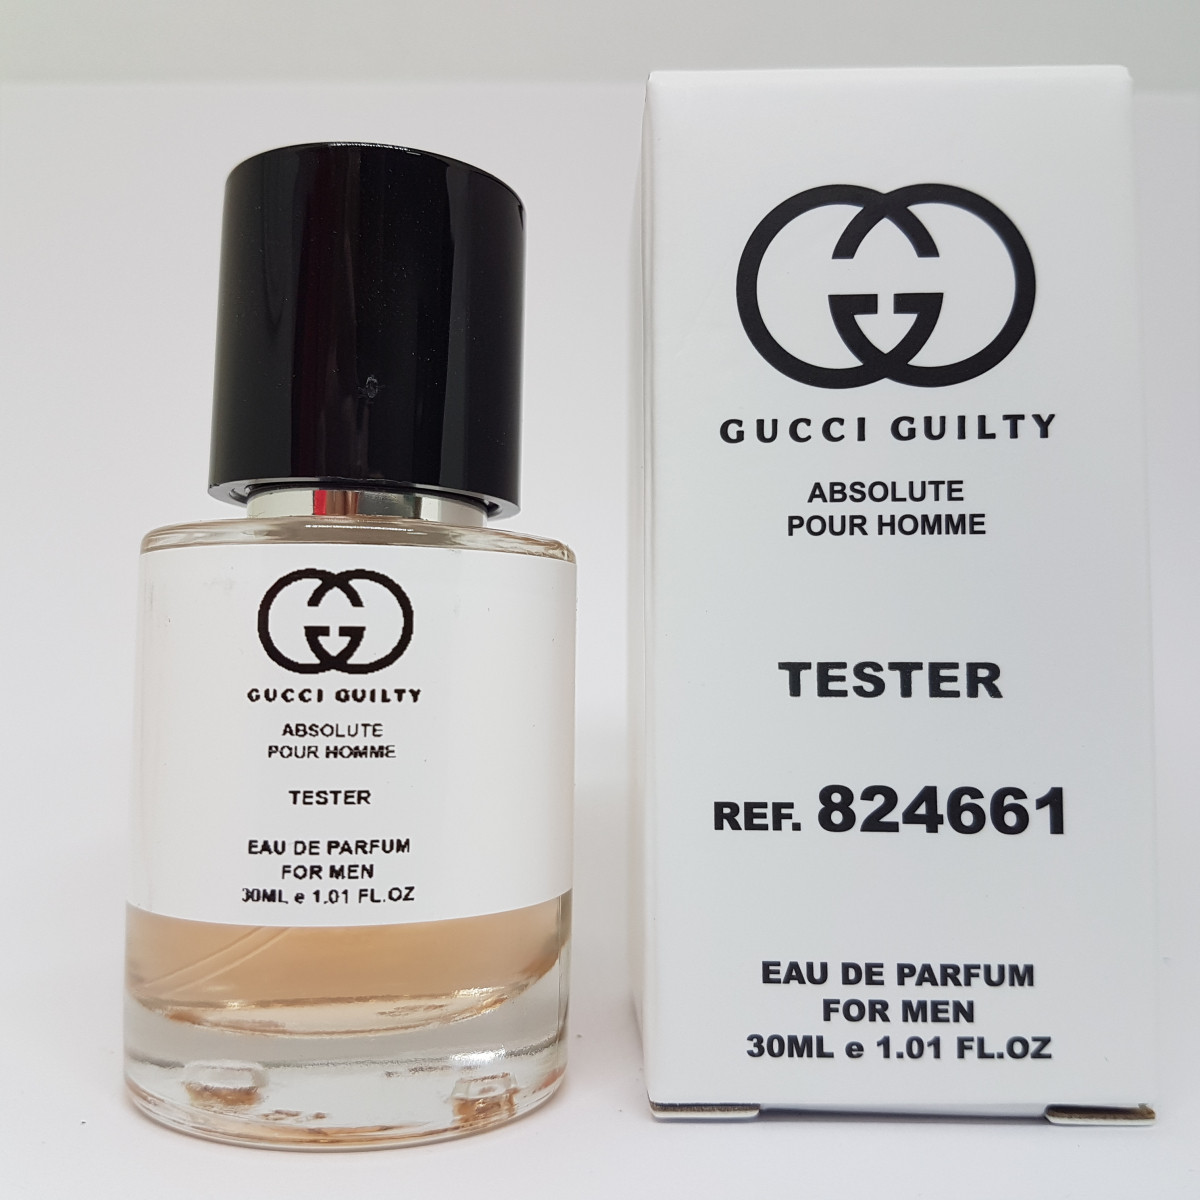 Gucci Guilty Absolute pour homme Масляный тестер 30 мл